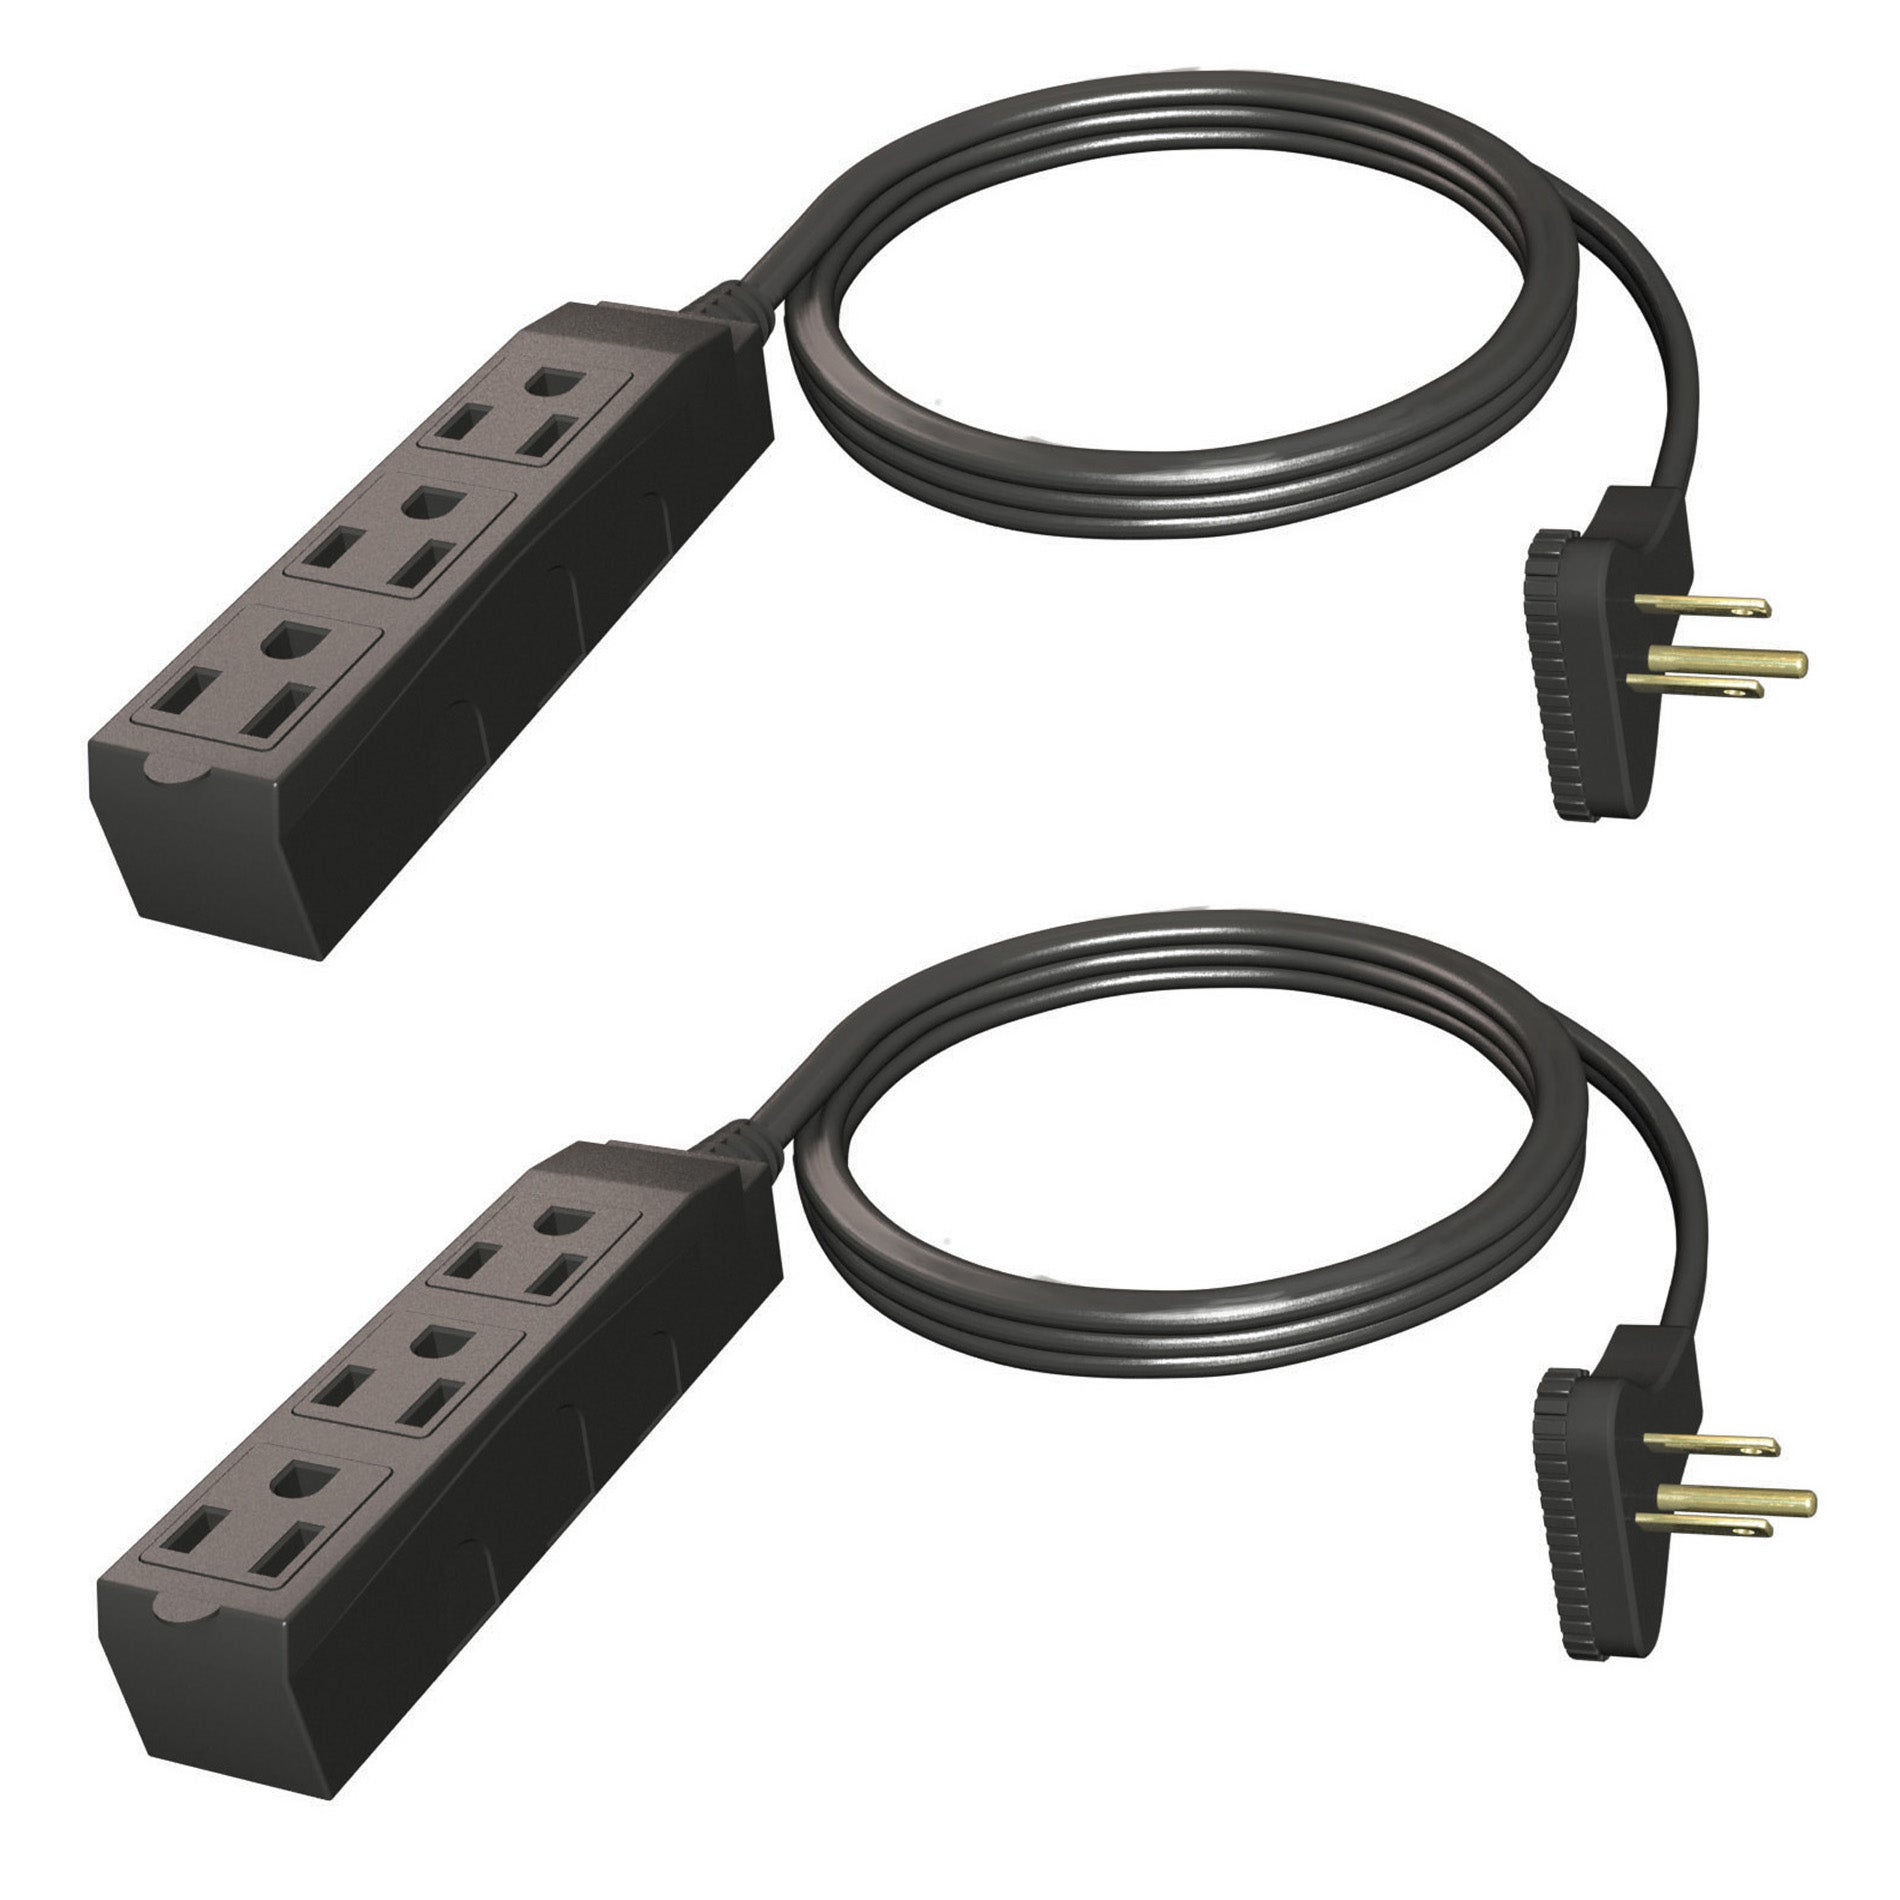 Stanley Electrical Heavy Duty Indoor Extension Cords (Set of 2